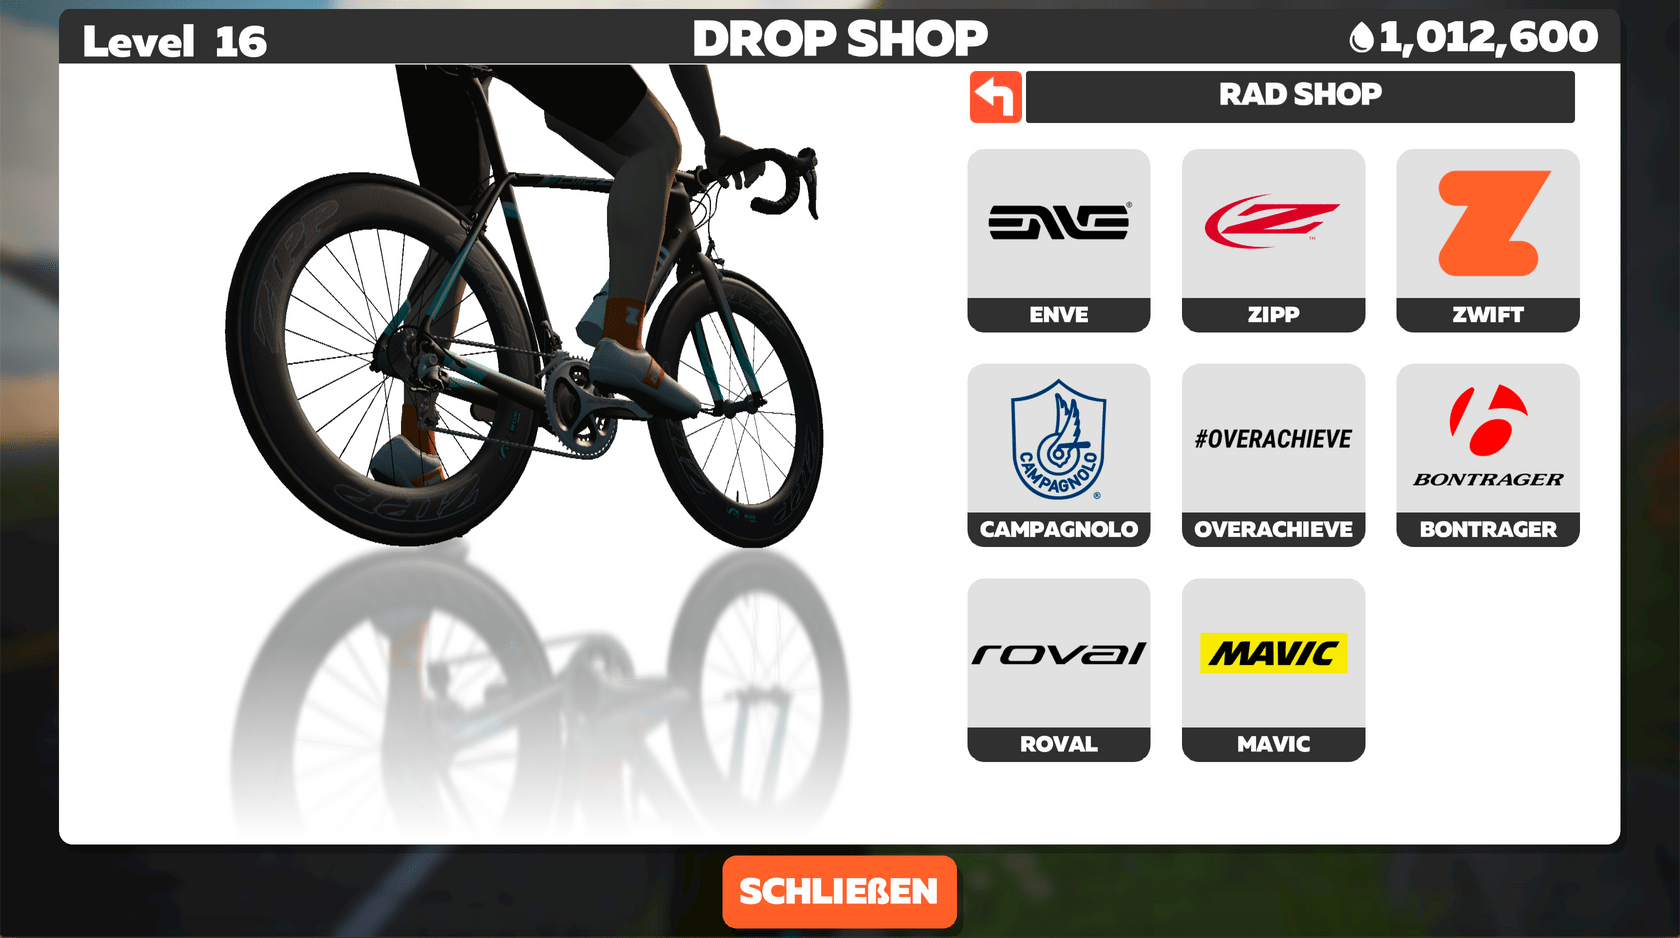 Drop Shop Rad Shop